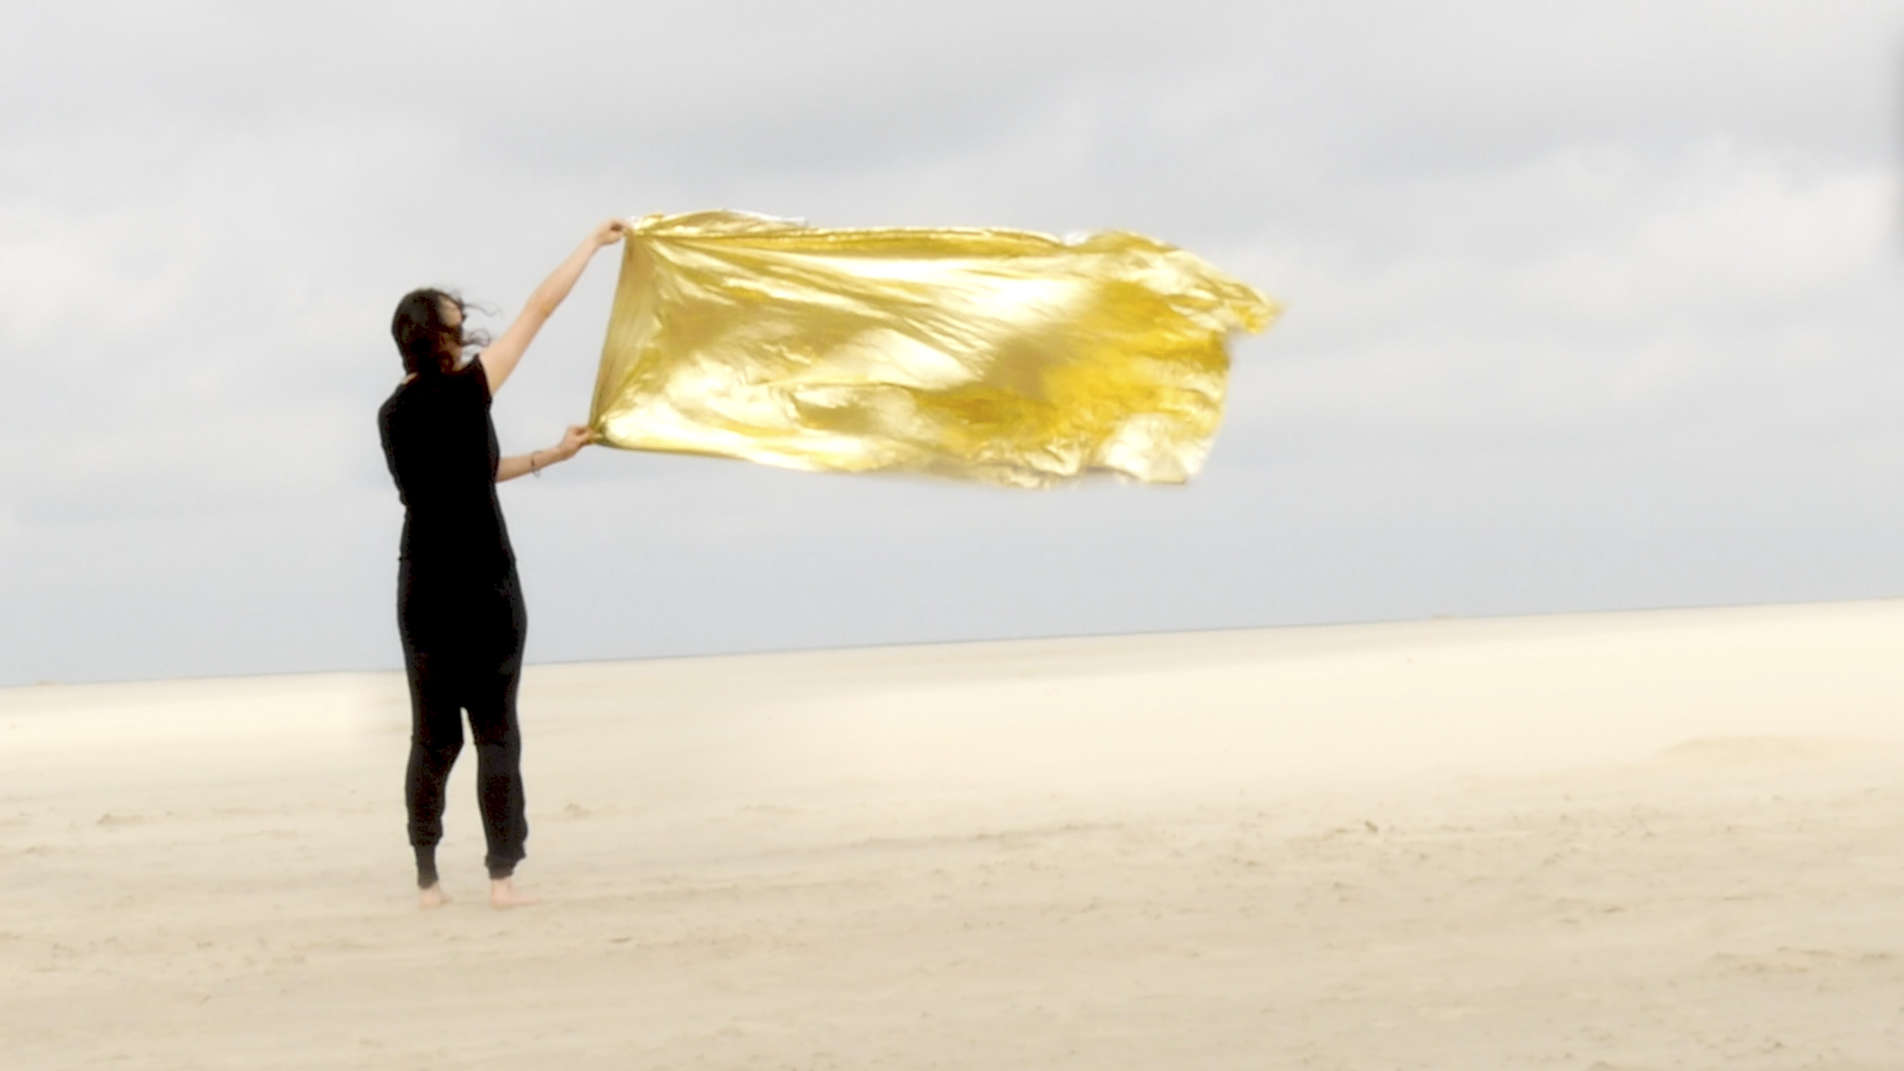 Black dressed woman stands in a desert and holds a golden cloth in the strong wind under overcast sky